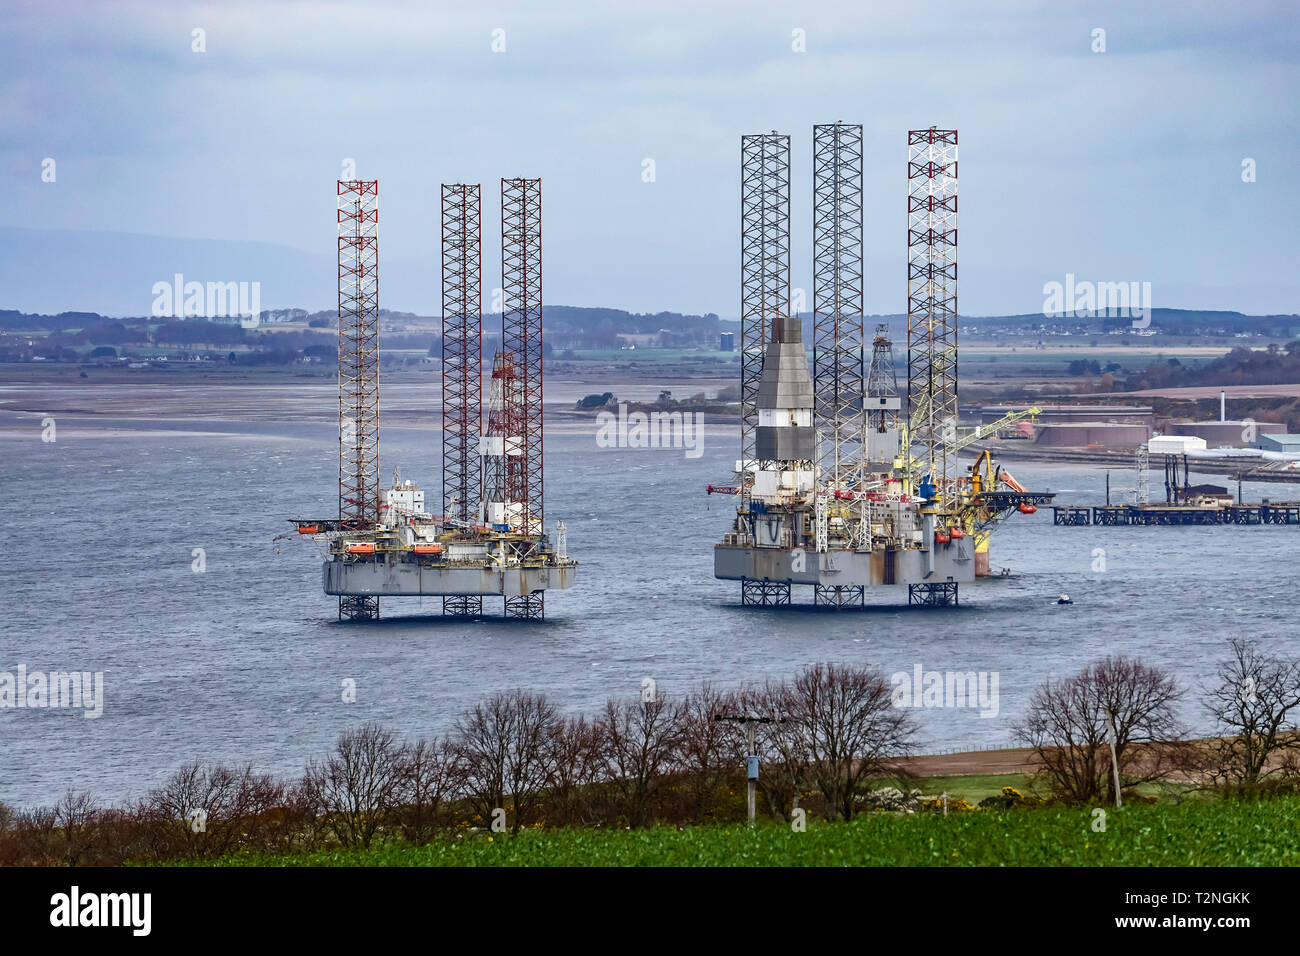 Moored platforms FON and Baug in Cromarty Firth near Cromarty Black Isle Highland Scotland UK - Stock Image